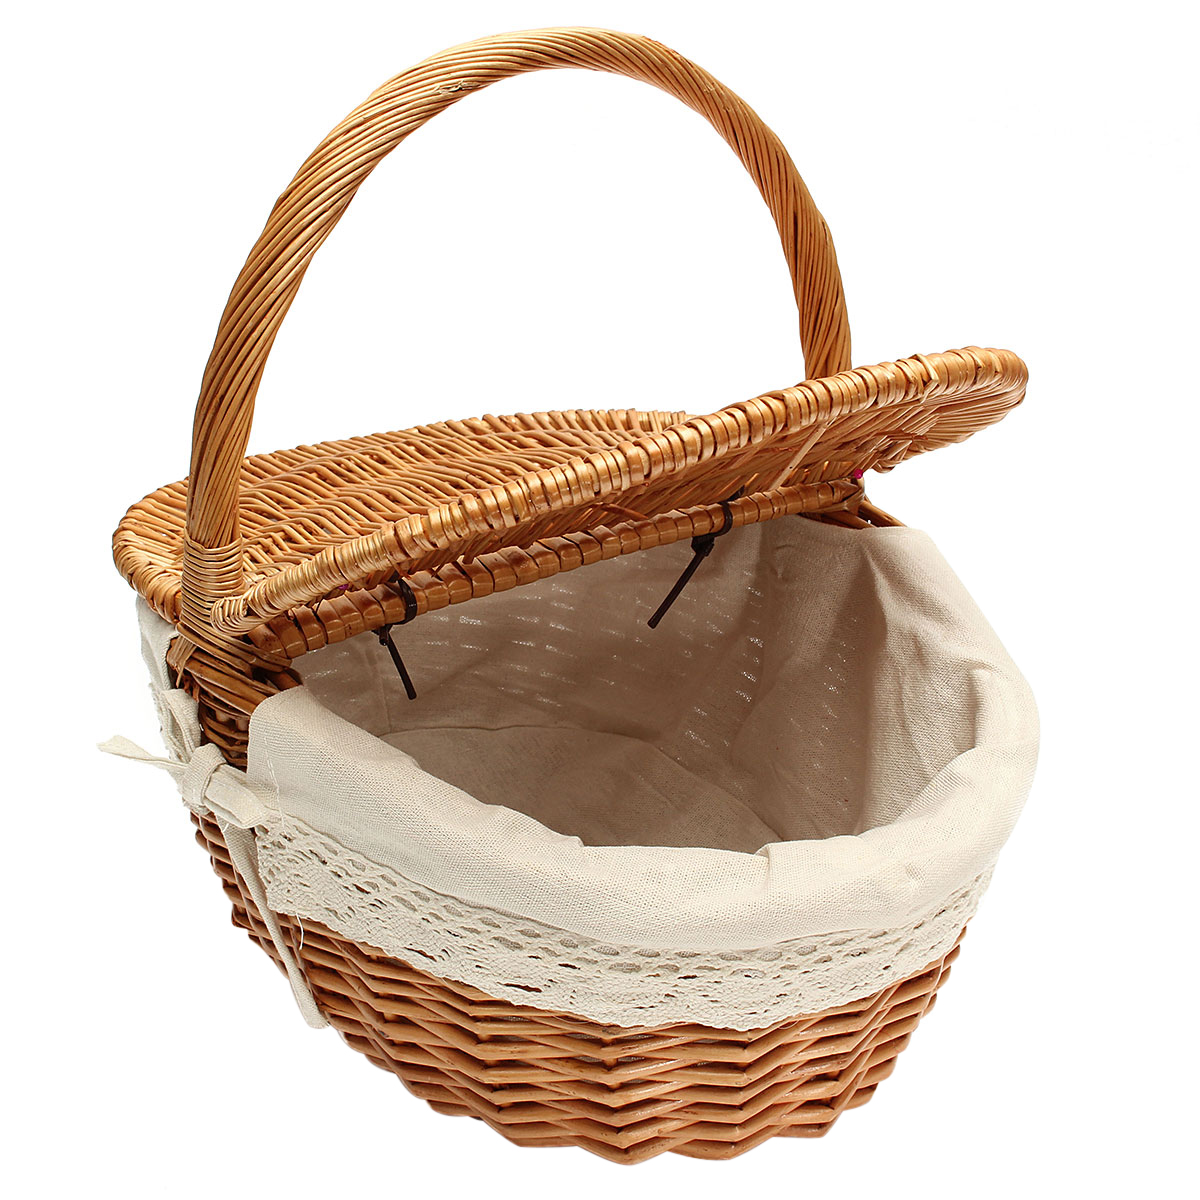 Us 19 66 42 Off Wicker Willow Picnic Basket Hamper As Ping Bag With Lid And Handle White Liner For Outdoor Camping Carrying Food In